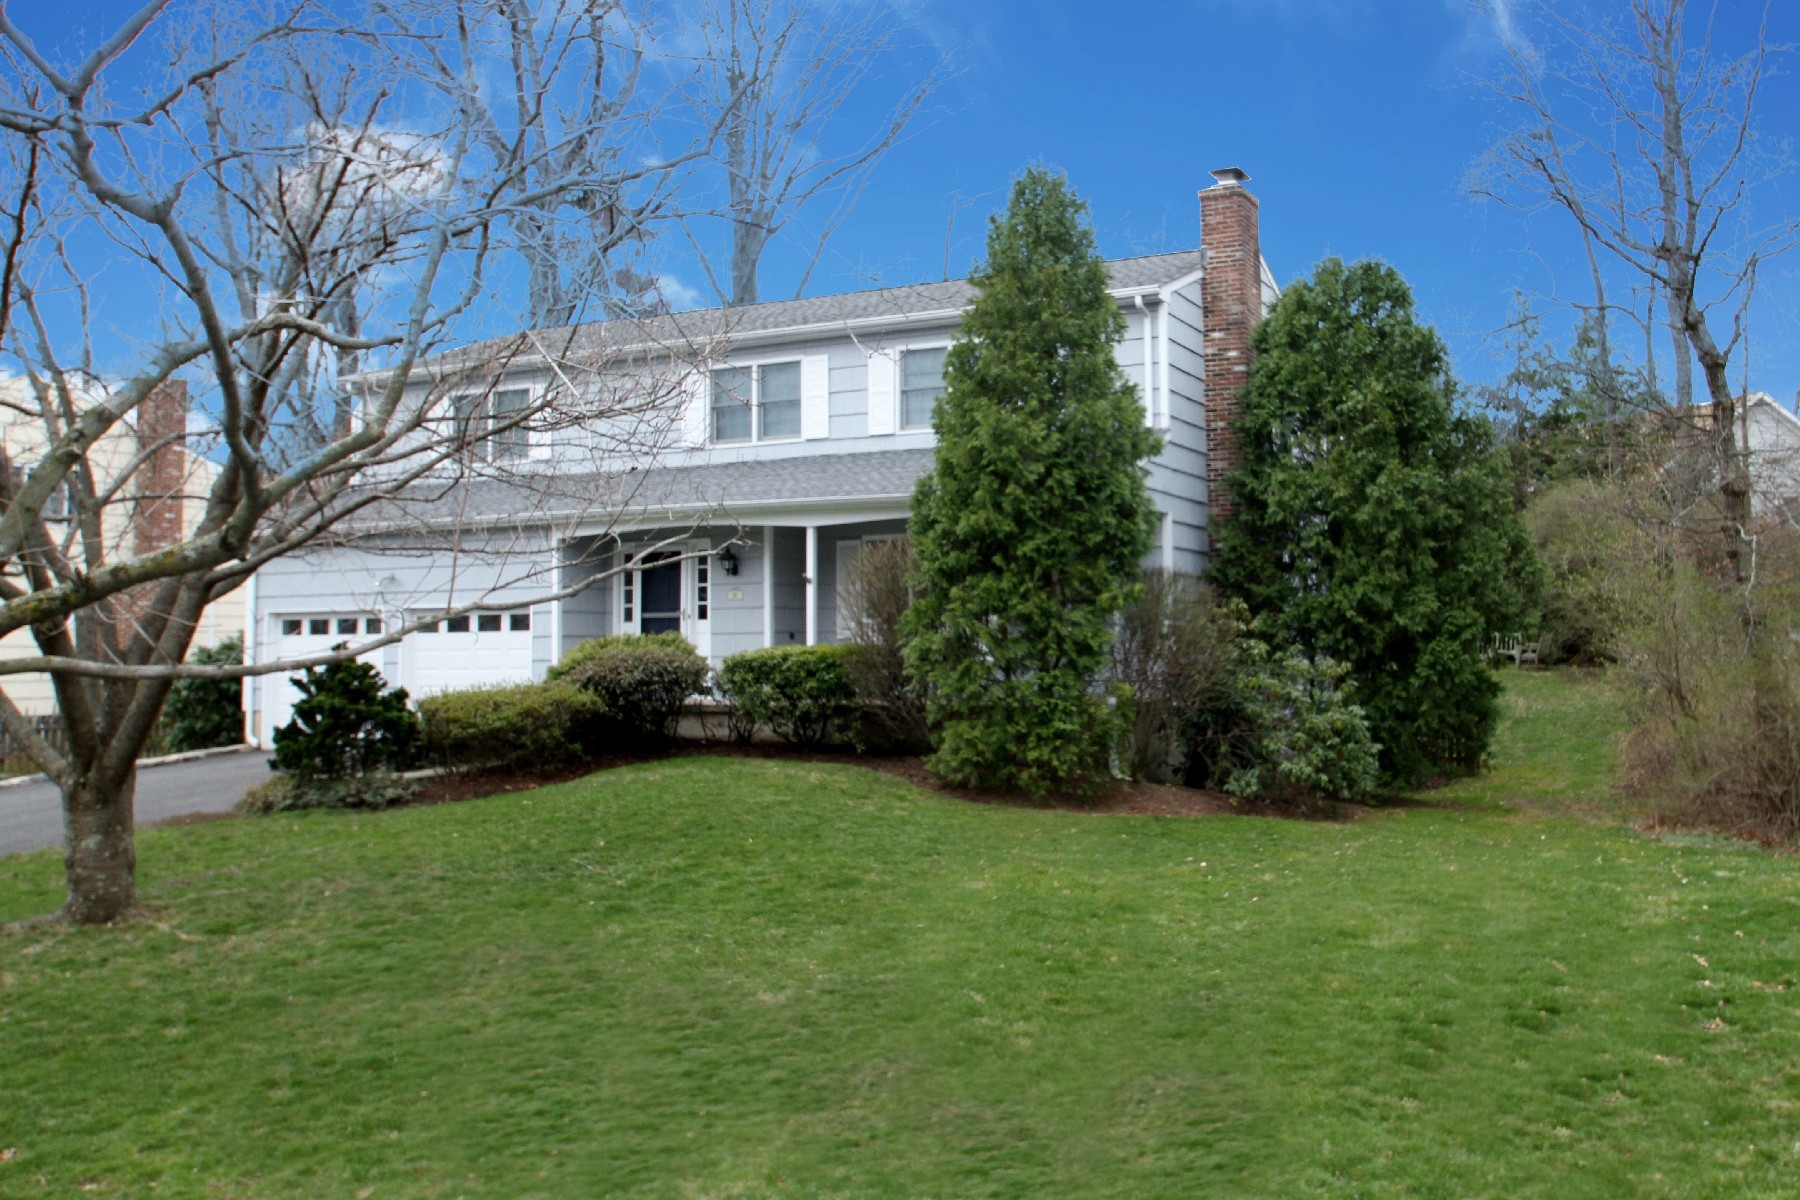 Single Family Home for Sale at Recently Expanded & Remodeled 36 Coachlamp Lane Darien, Connecticut, 06820 United States